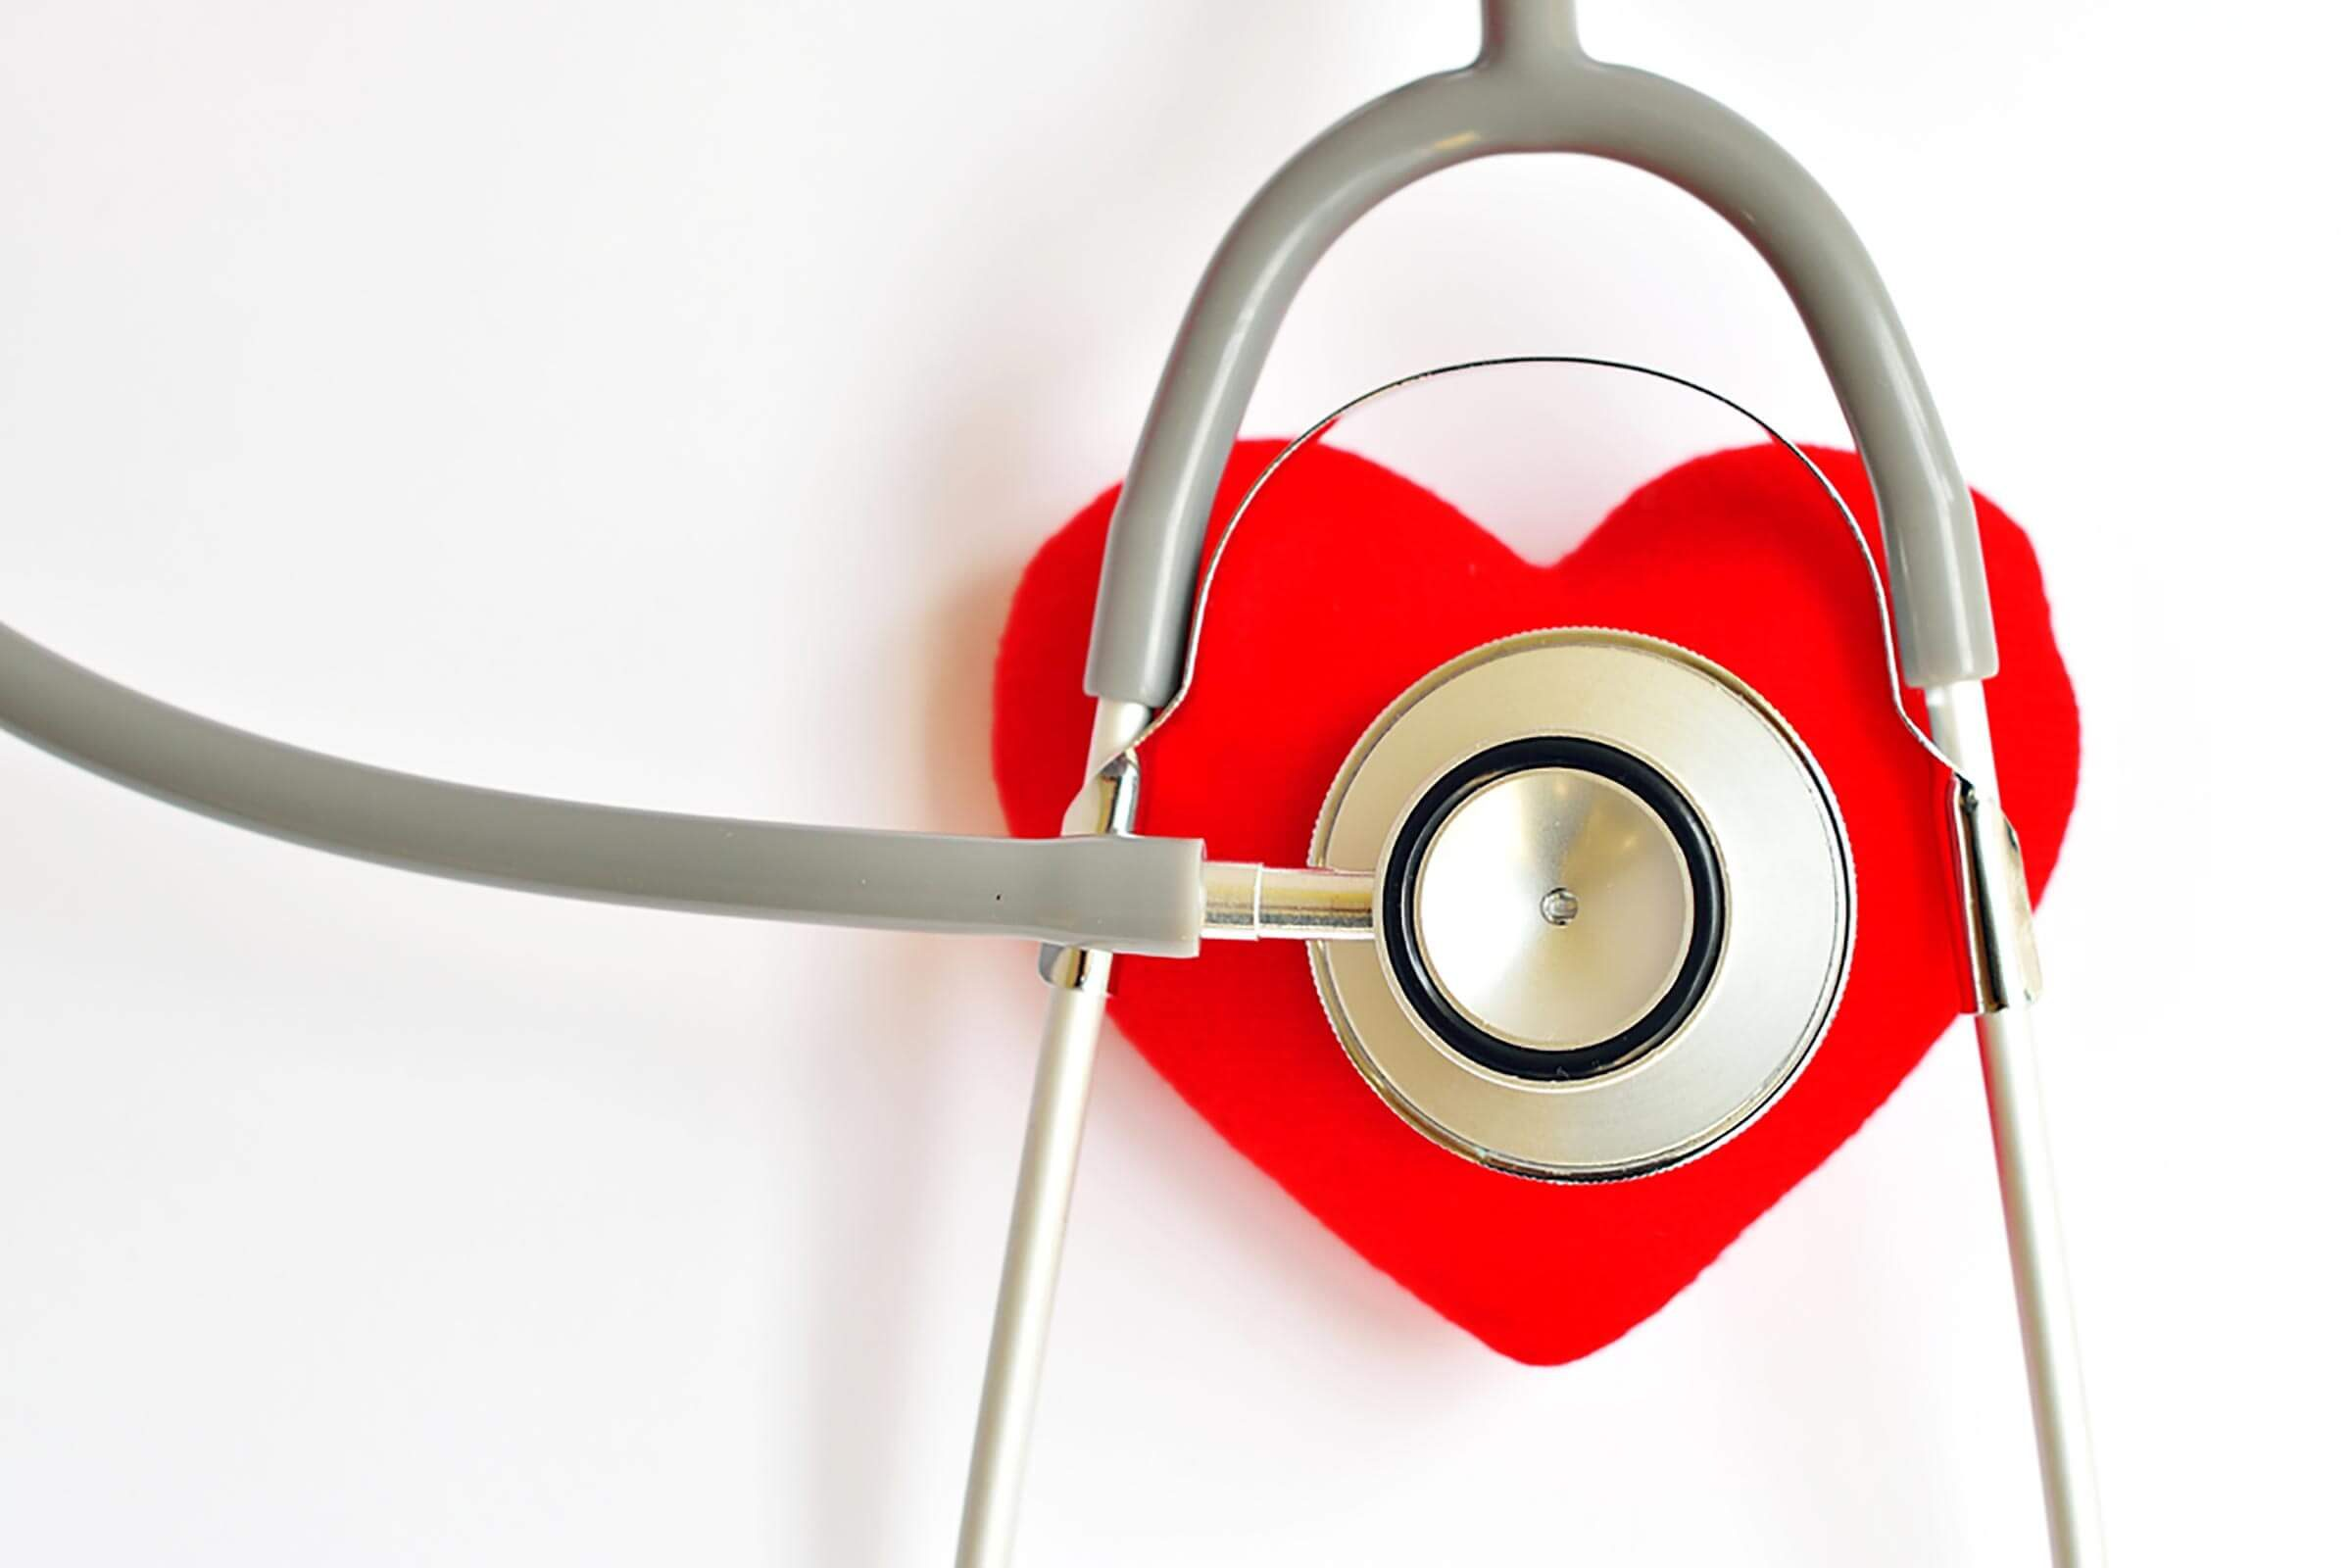 stethoscope on replica of a red heart